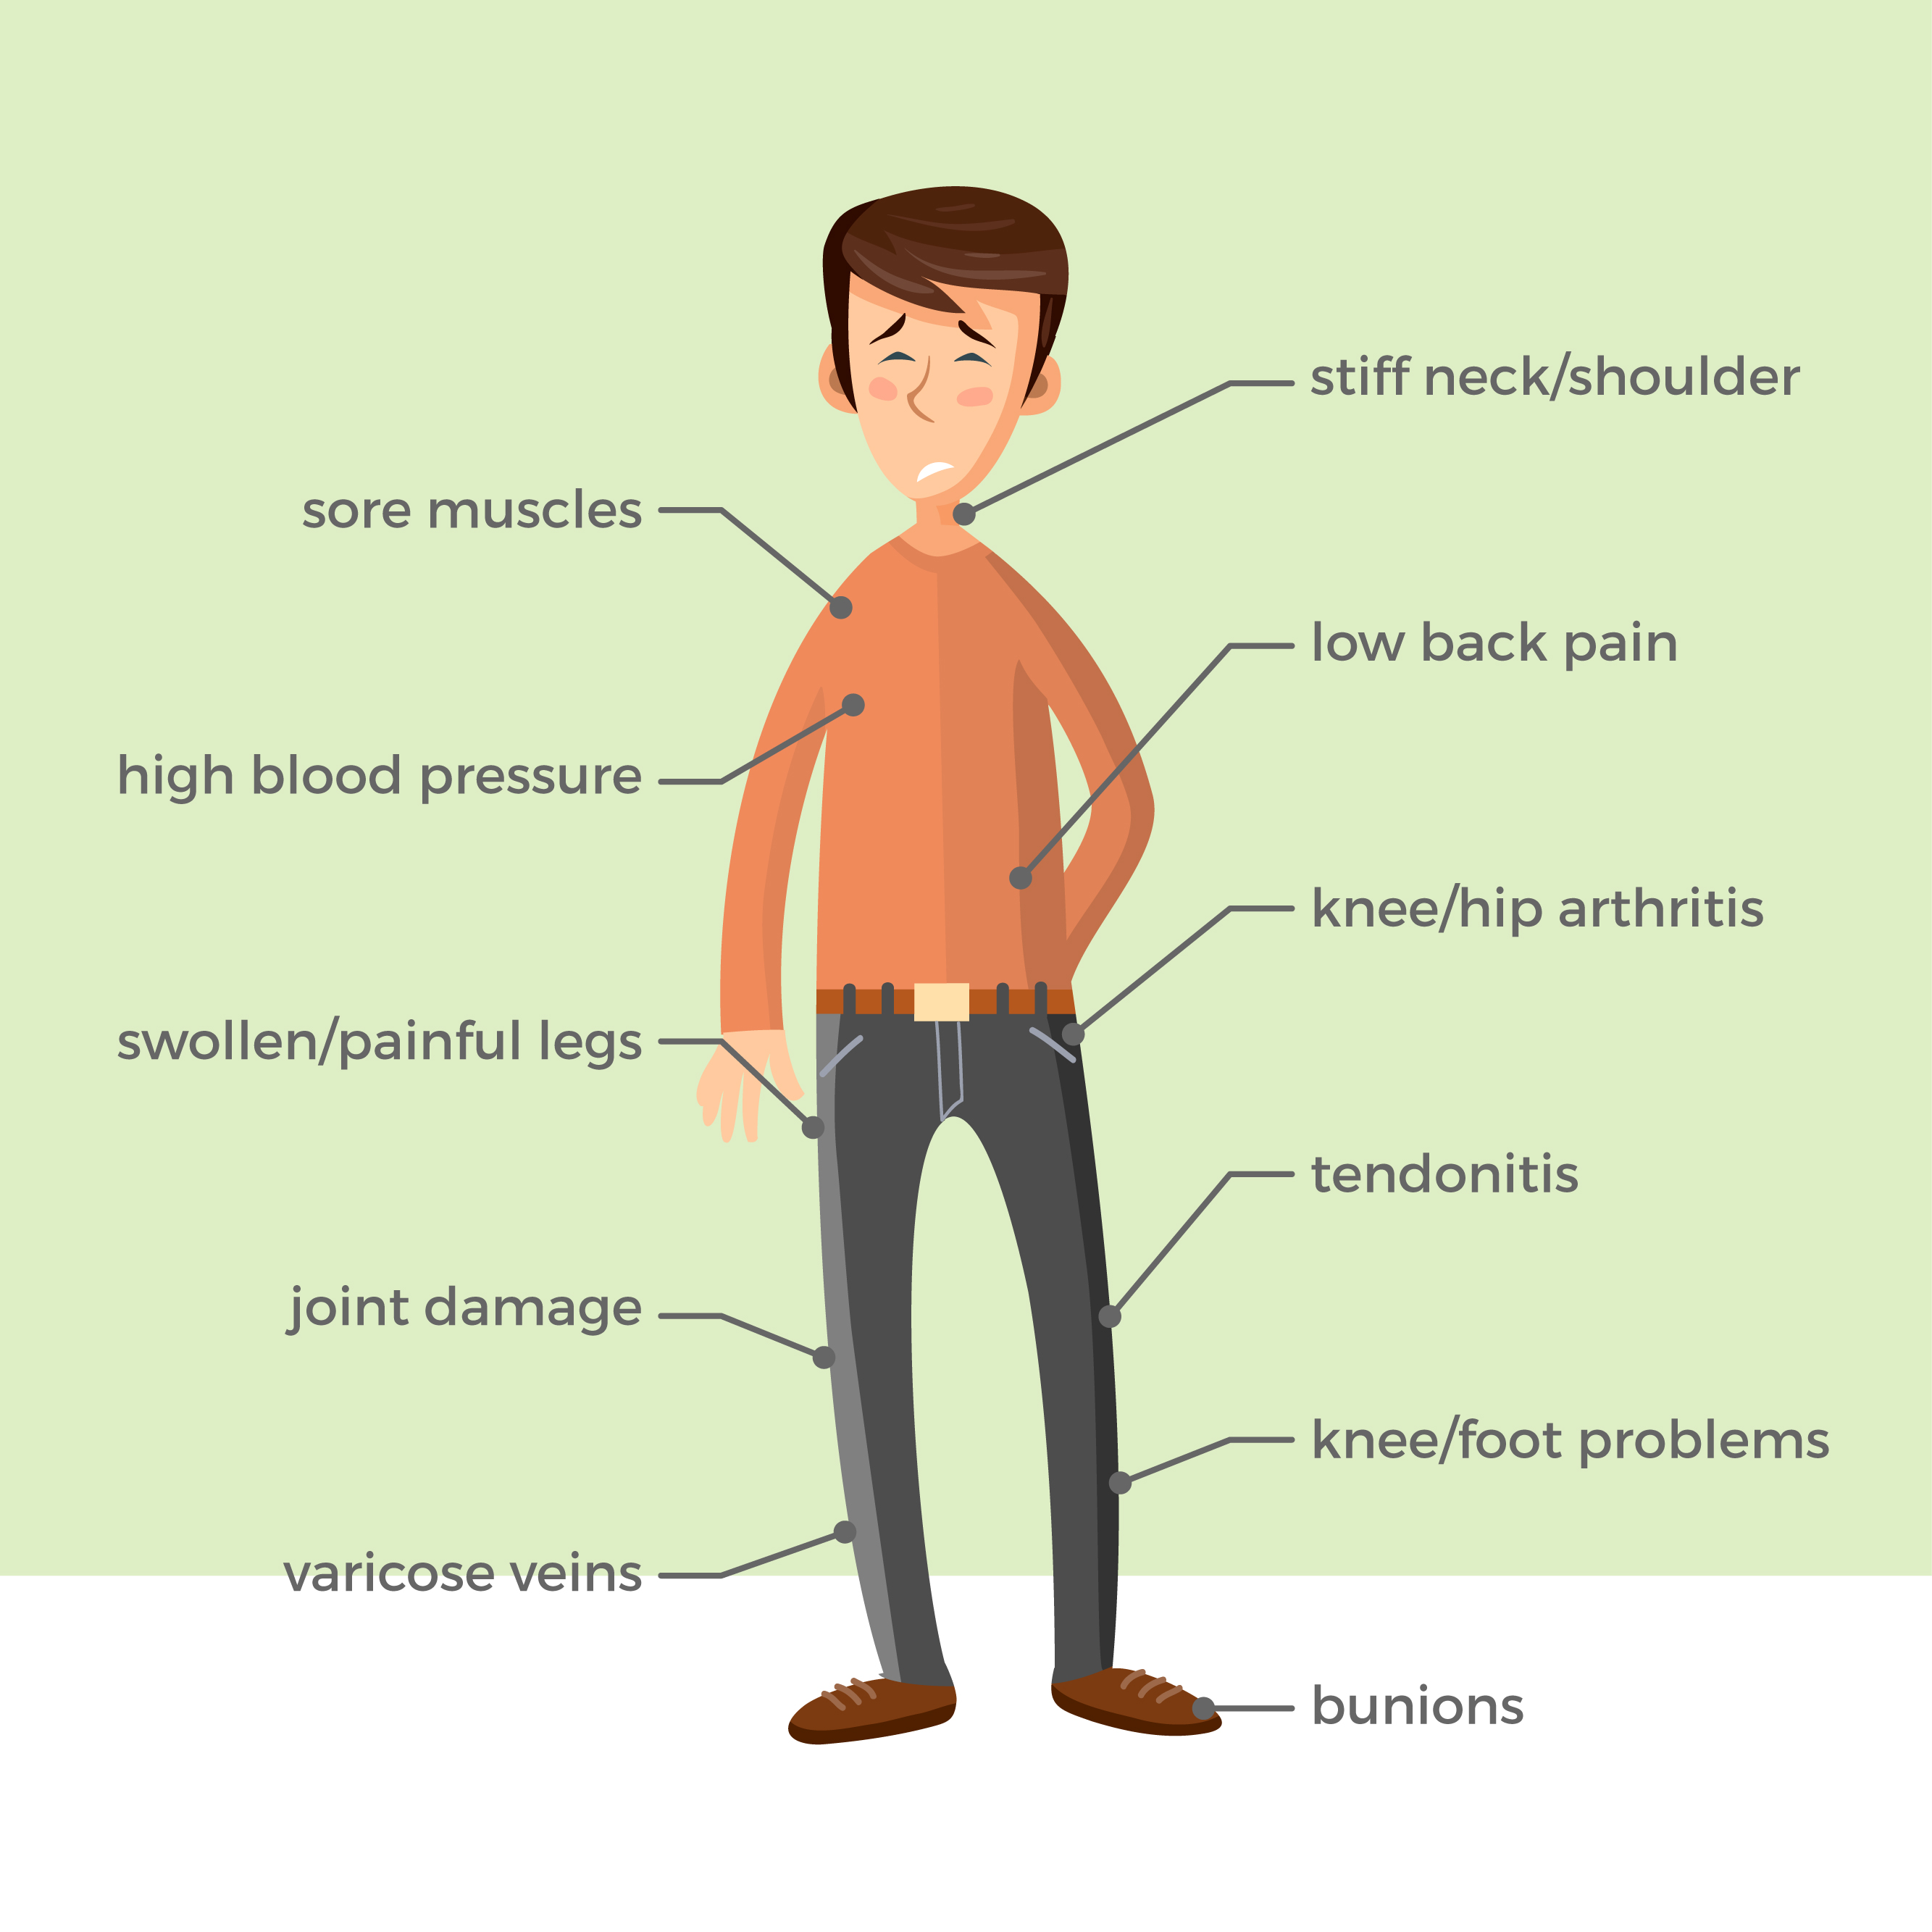 character in pain with various problems associated with standing for too long